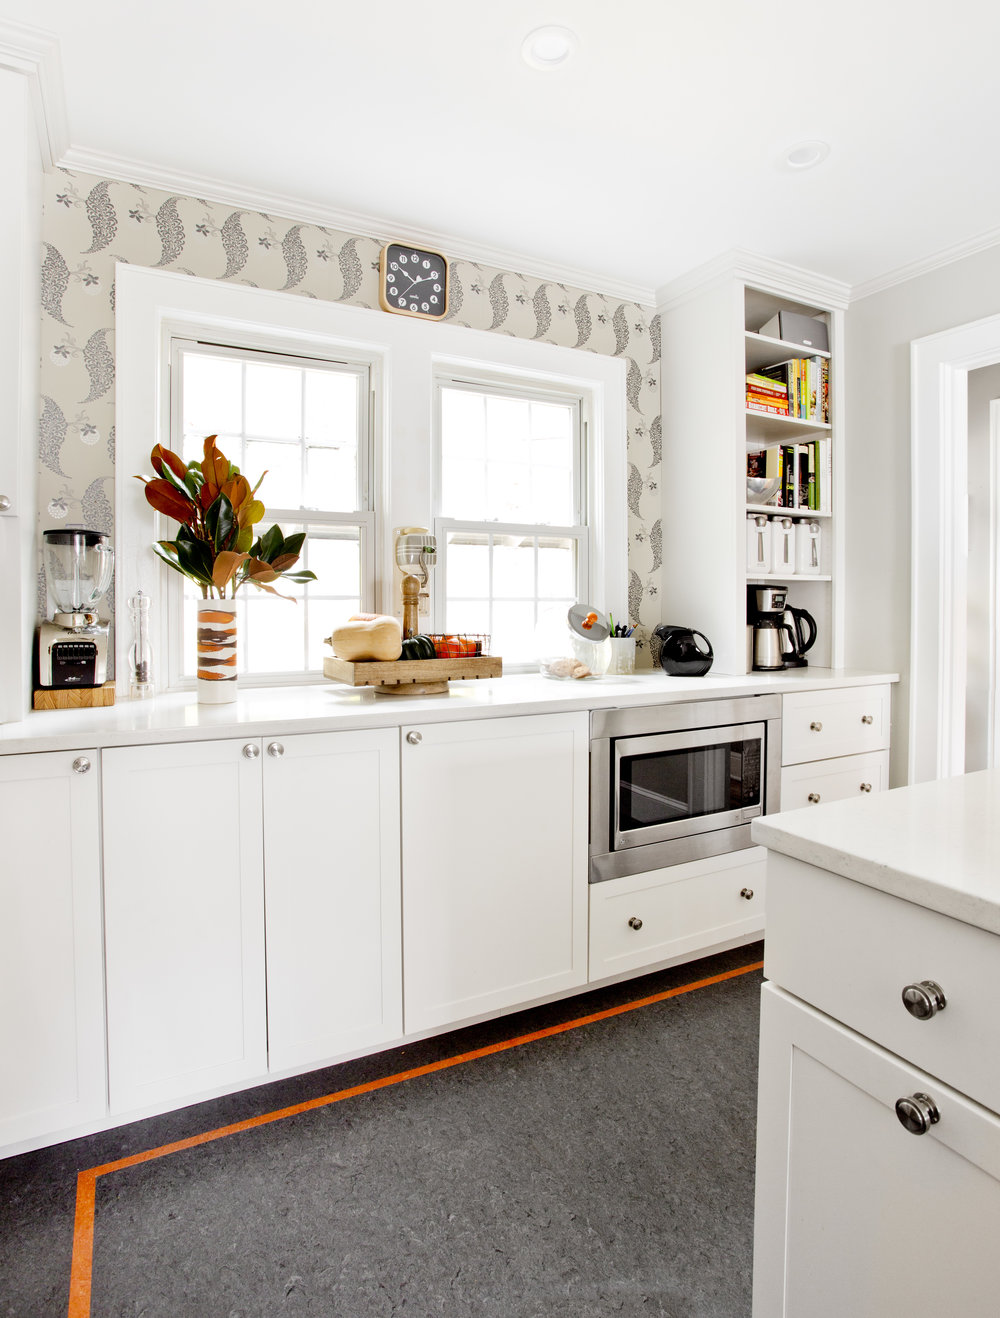 KELHI_TRANSITIONAL_WHITE_KITCHEN_IDEAS.jpg